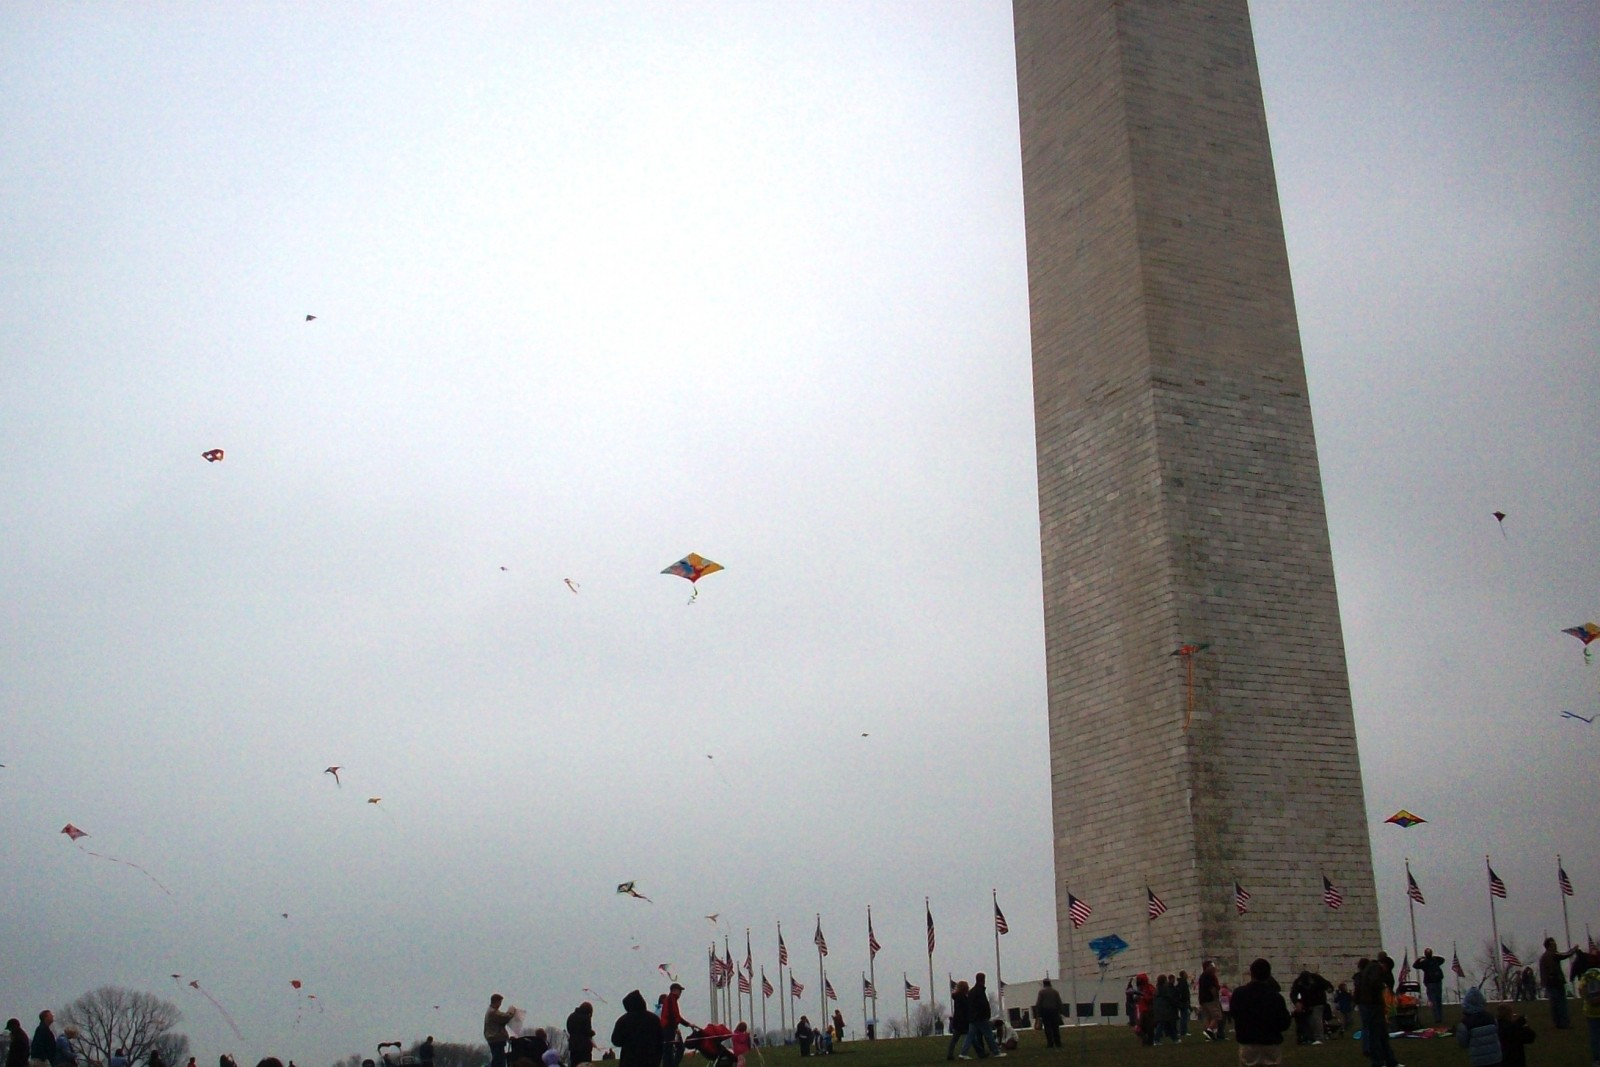 Smithsonian Kite Festival in front of the Washington Monument